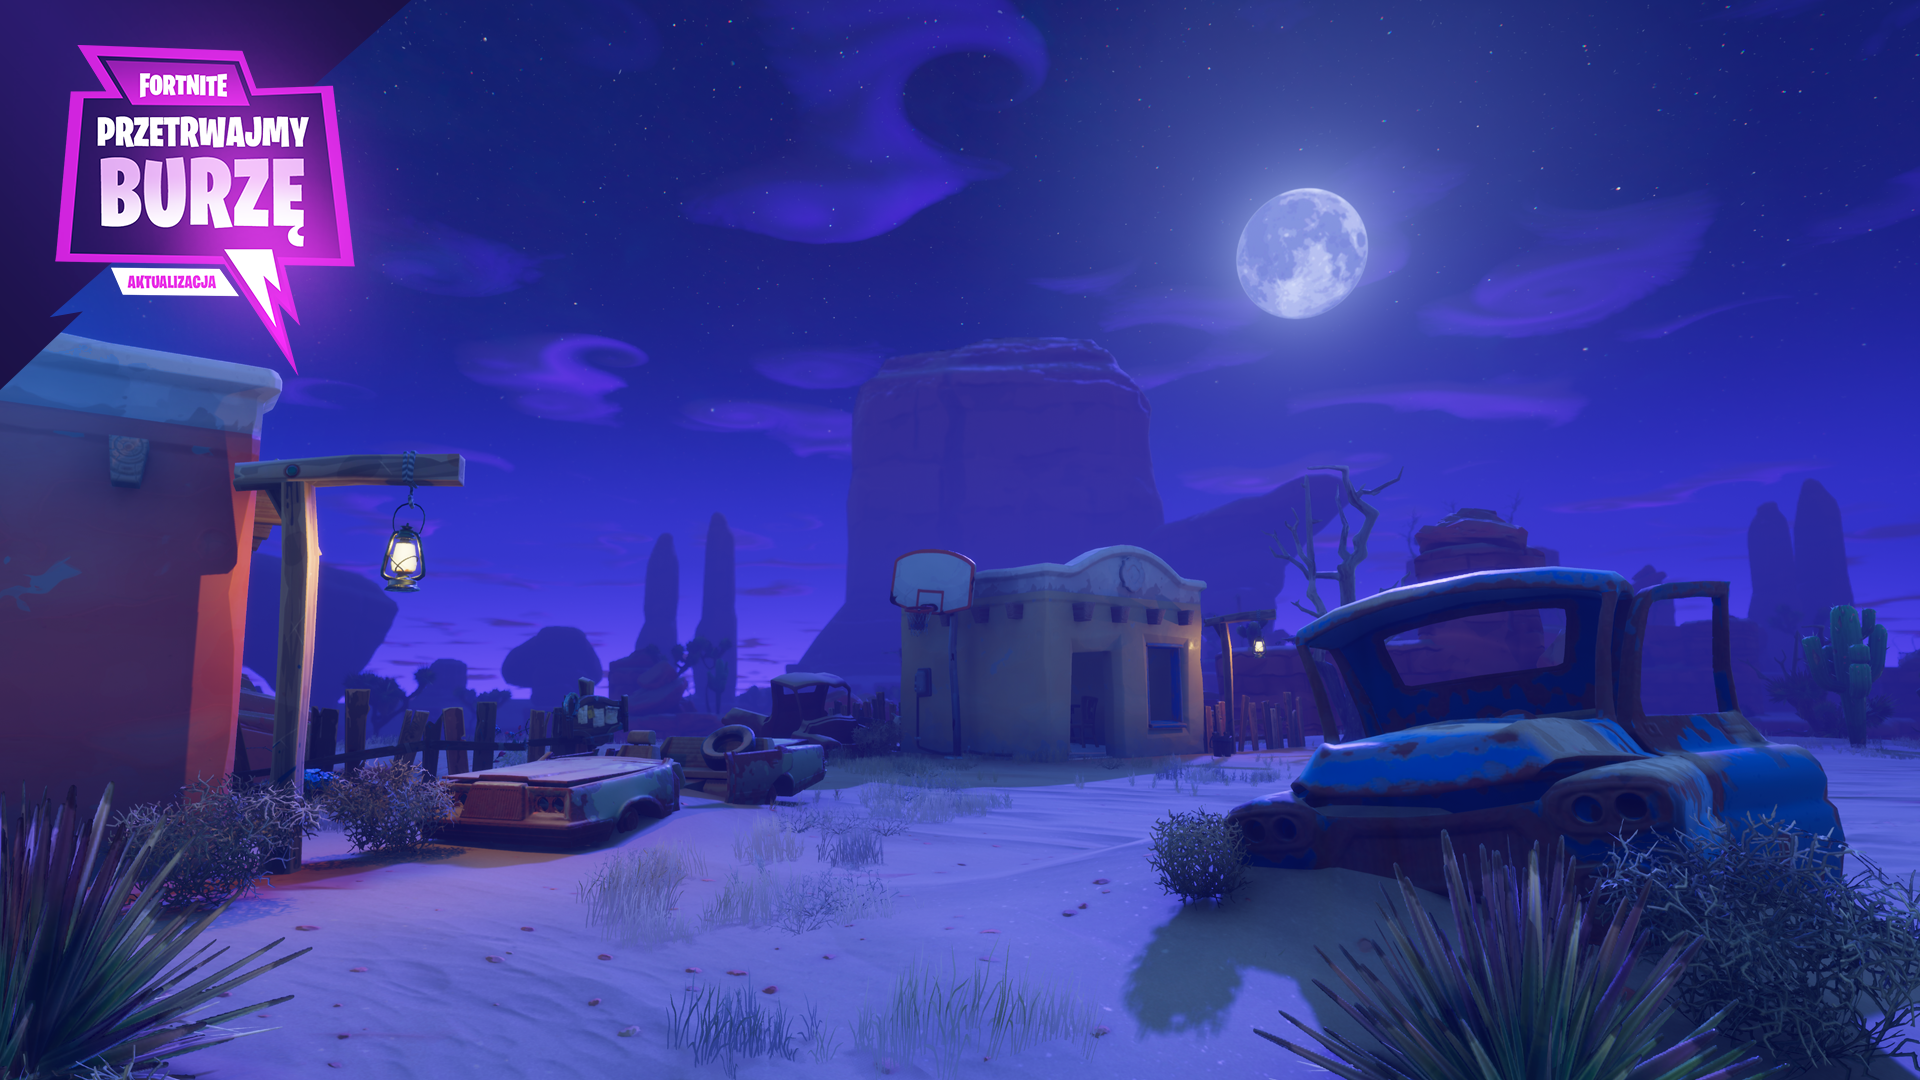 Fortnite%2Fblog%2Fsurvive-the-storm---release-notes%2FPL_2-Canny-Valley-1920x1080-0cb291a1f534602cfca1a0d991d3210e5490d577